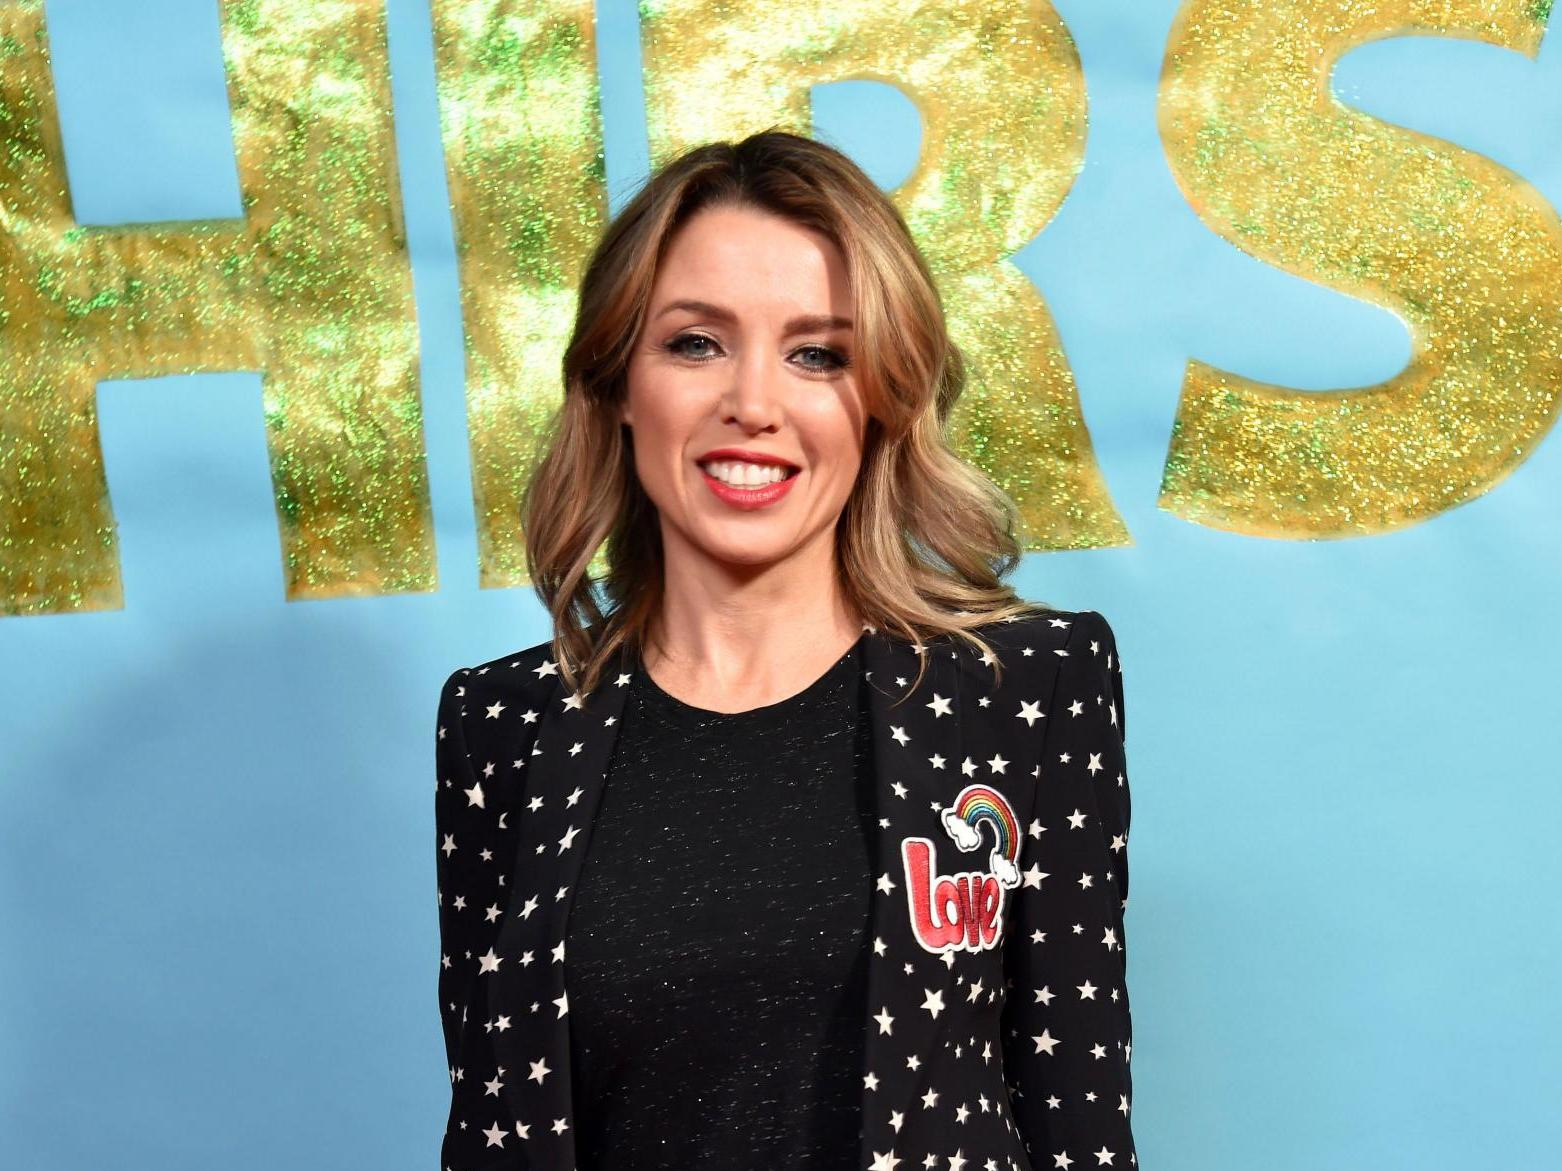 The X Factor: Dannii Minogue says she was left 'broken' after working on reality show